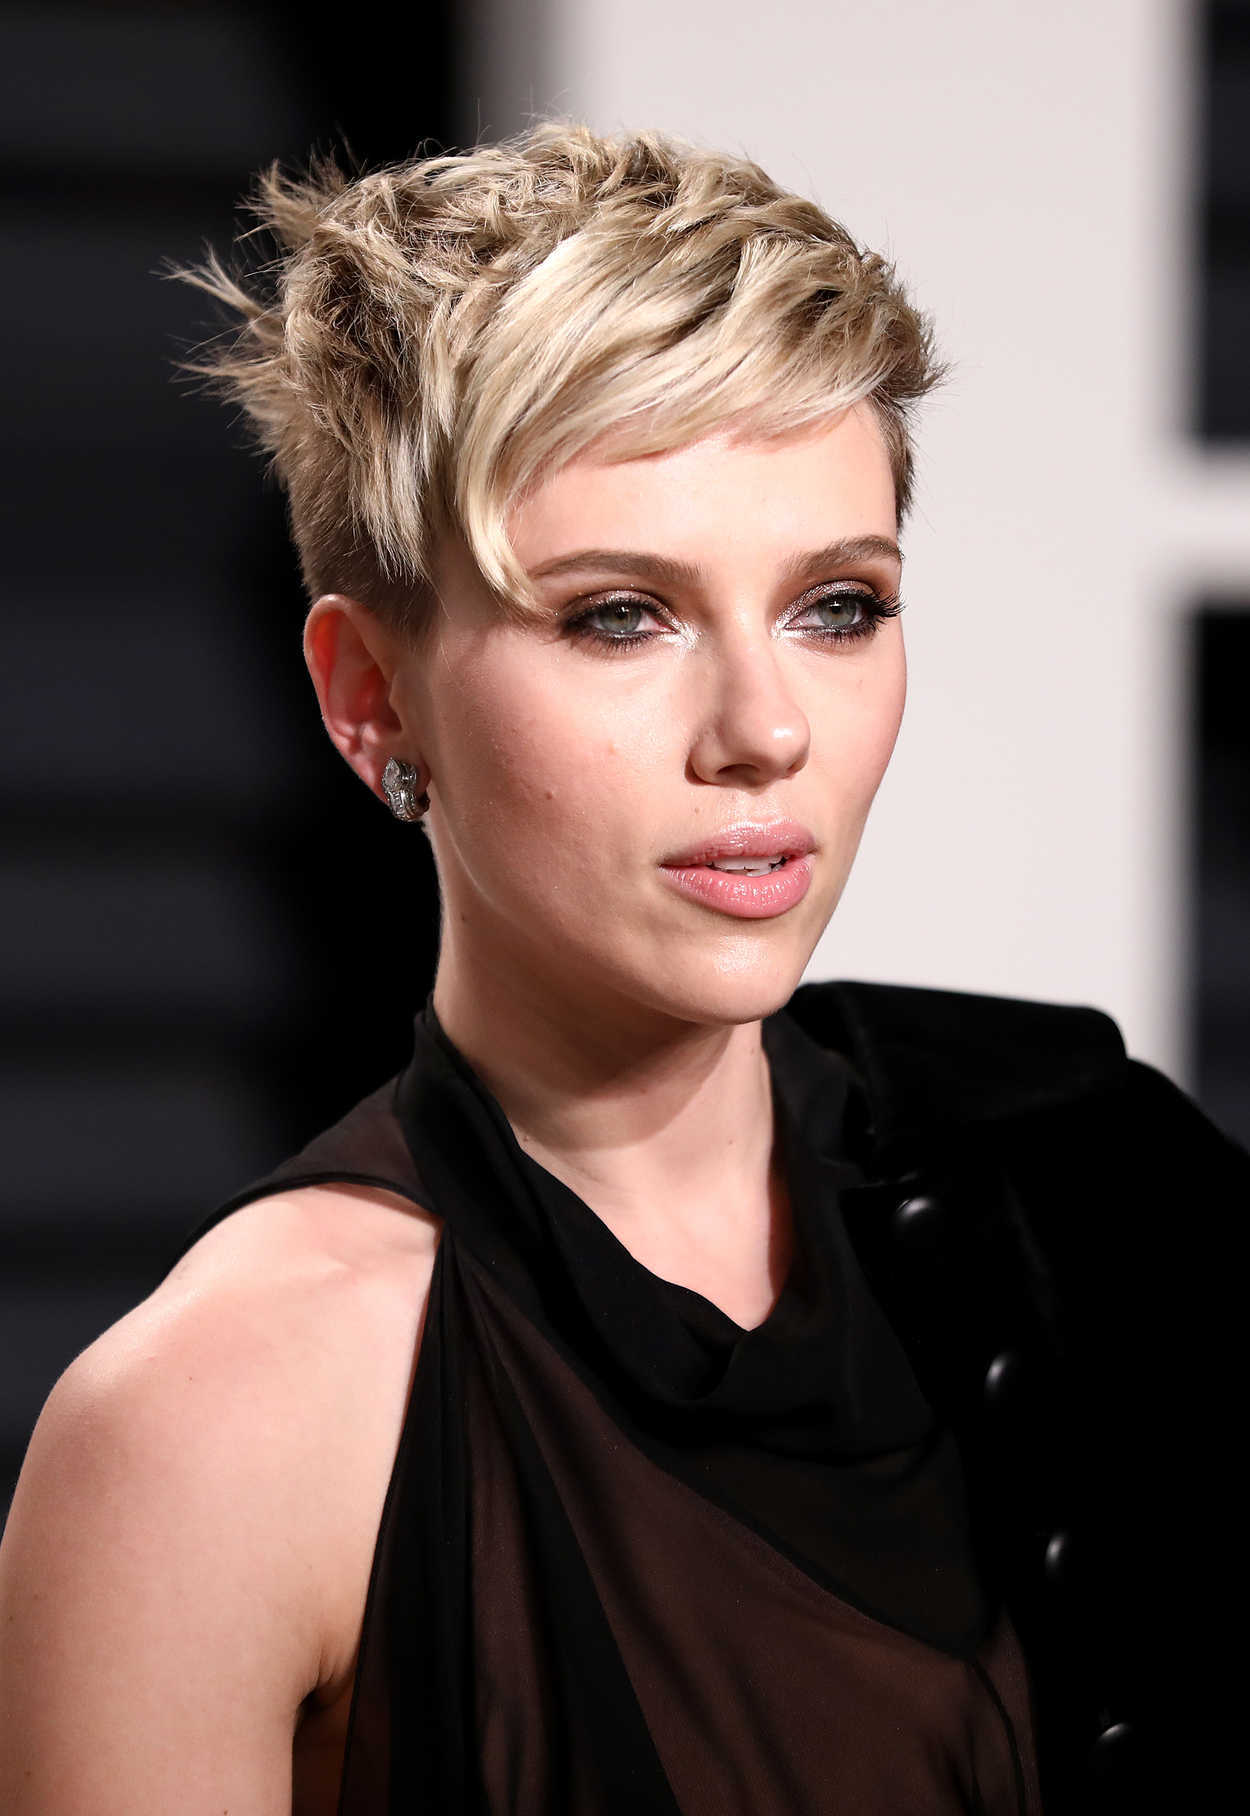 Scarlett Johansson at the 2017 Vanity Fair Oscar Party ... Scarlett Johansson